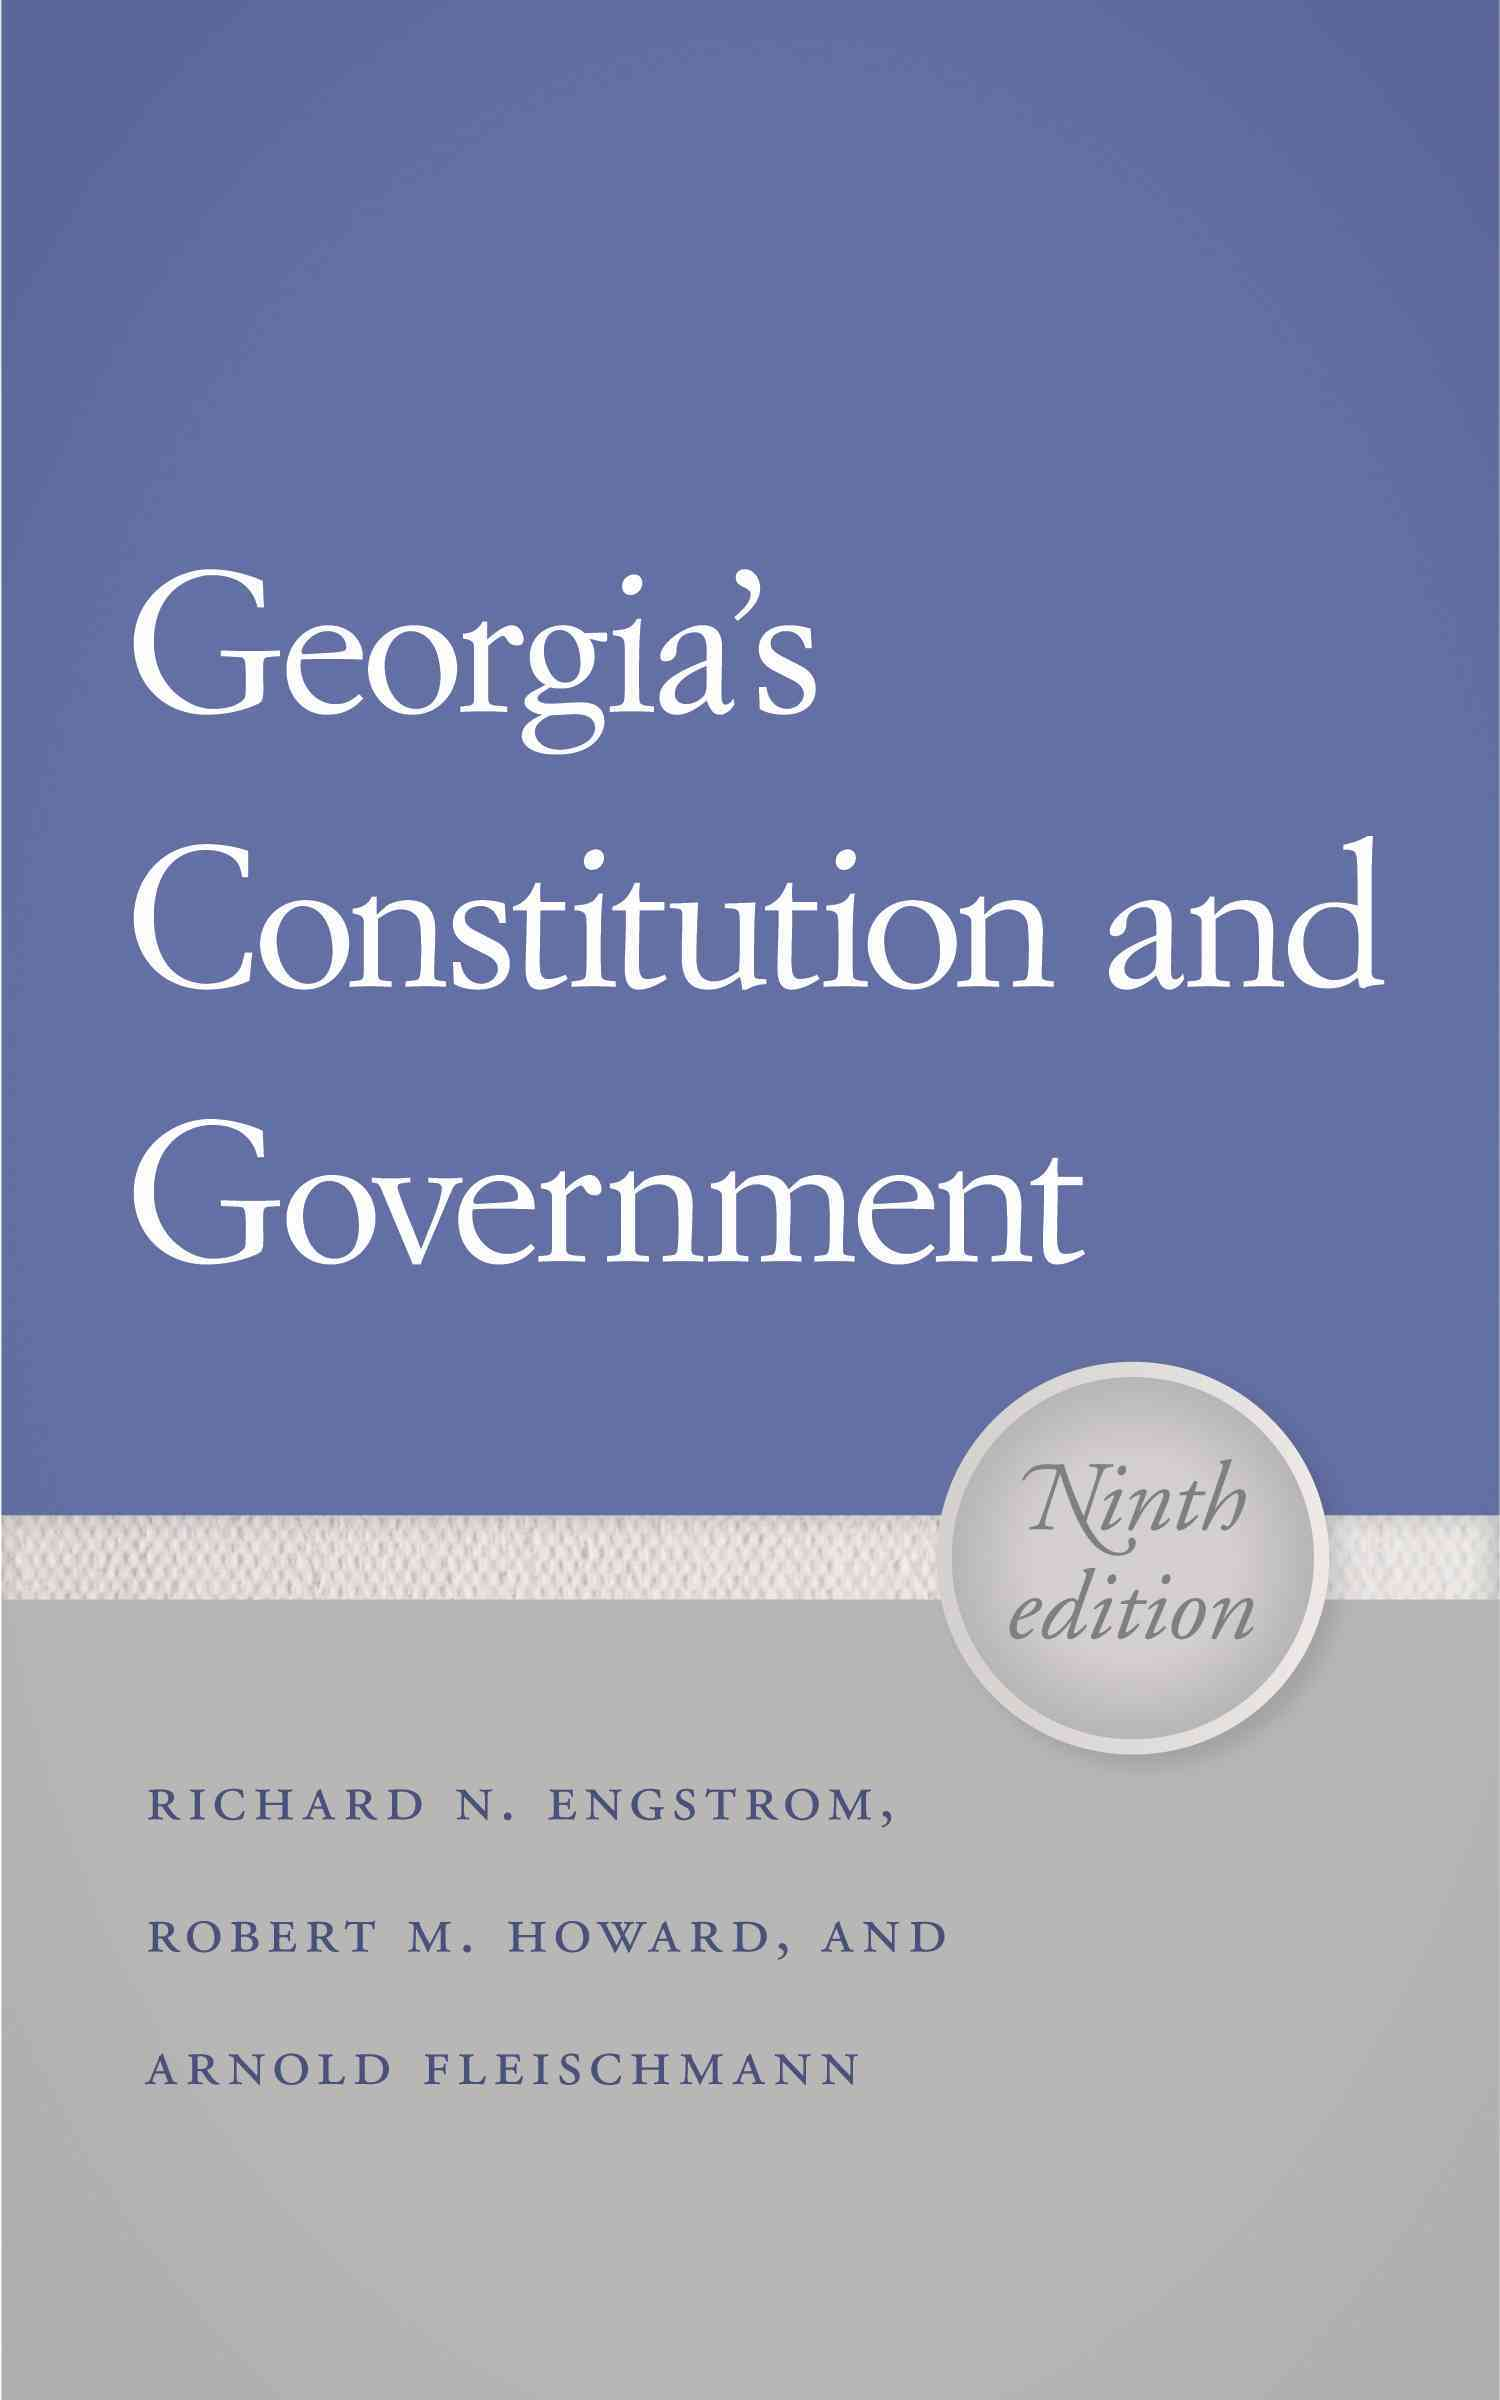 Georgia's Constitution and Government By Engstrom, Richard N./ Howard, Robert M./ Fleischmann, Arnold